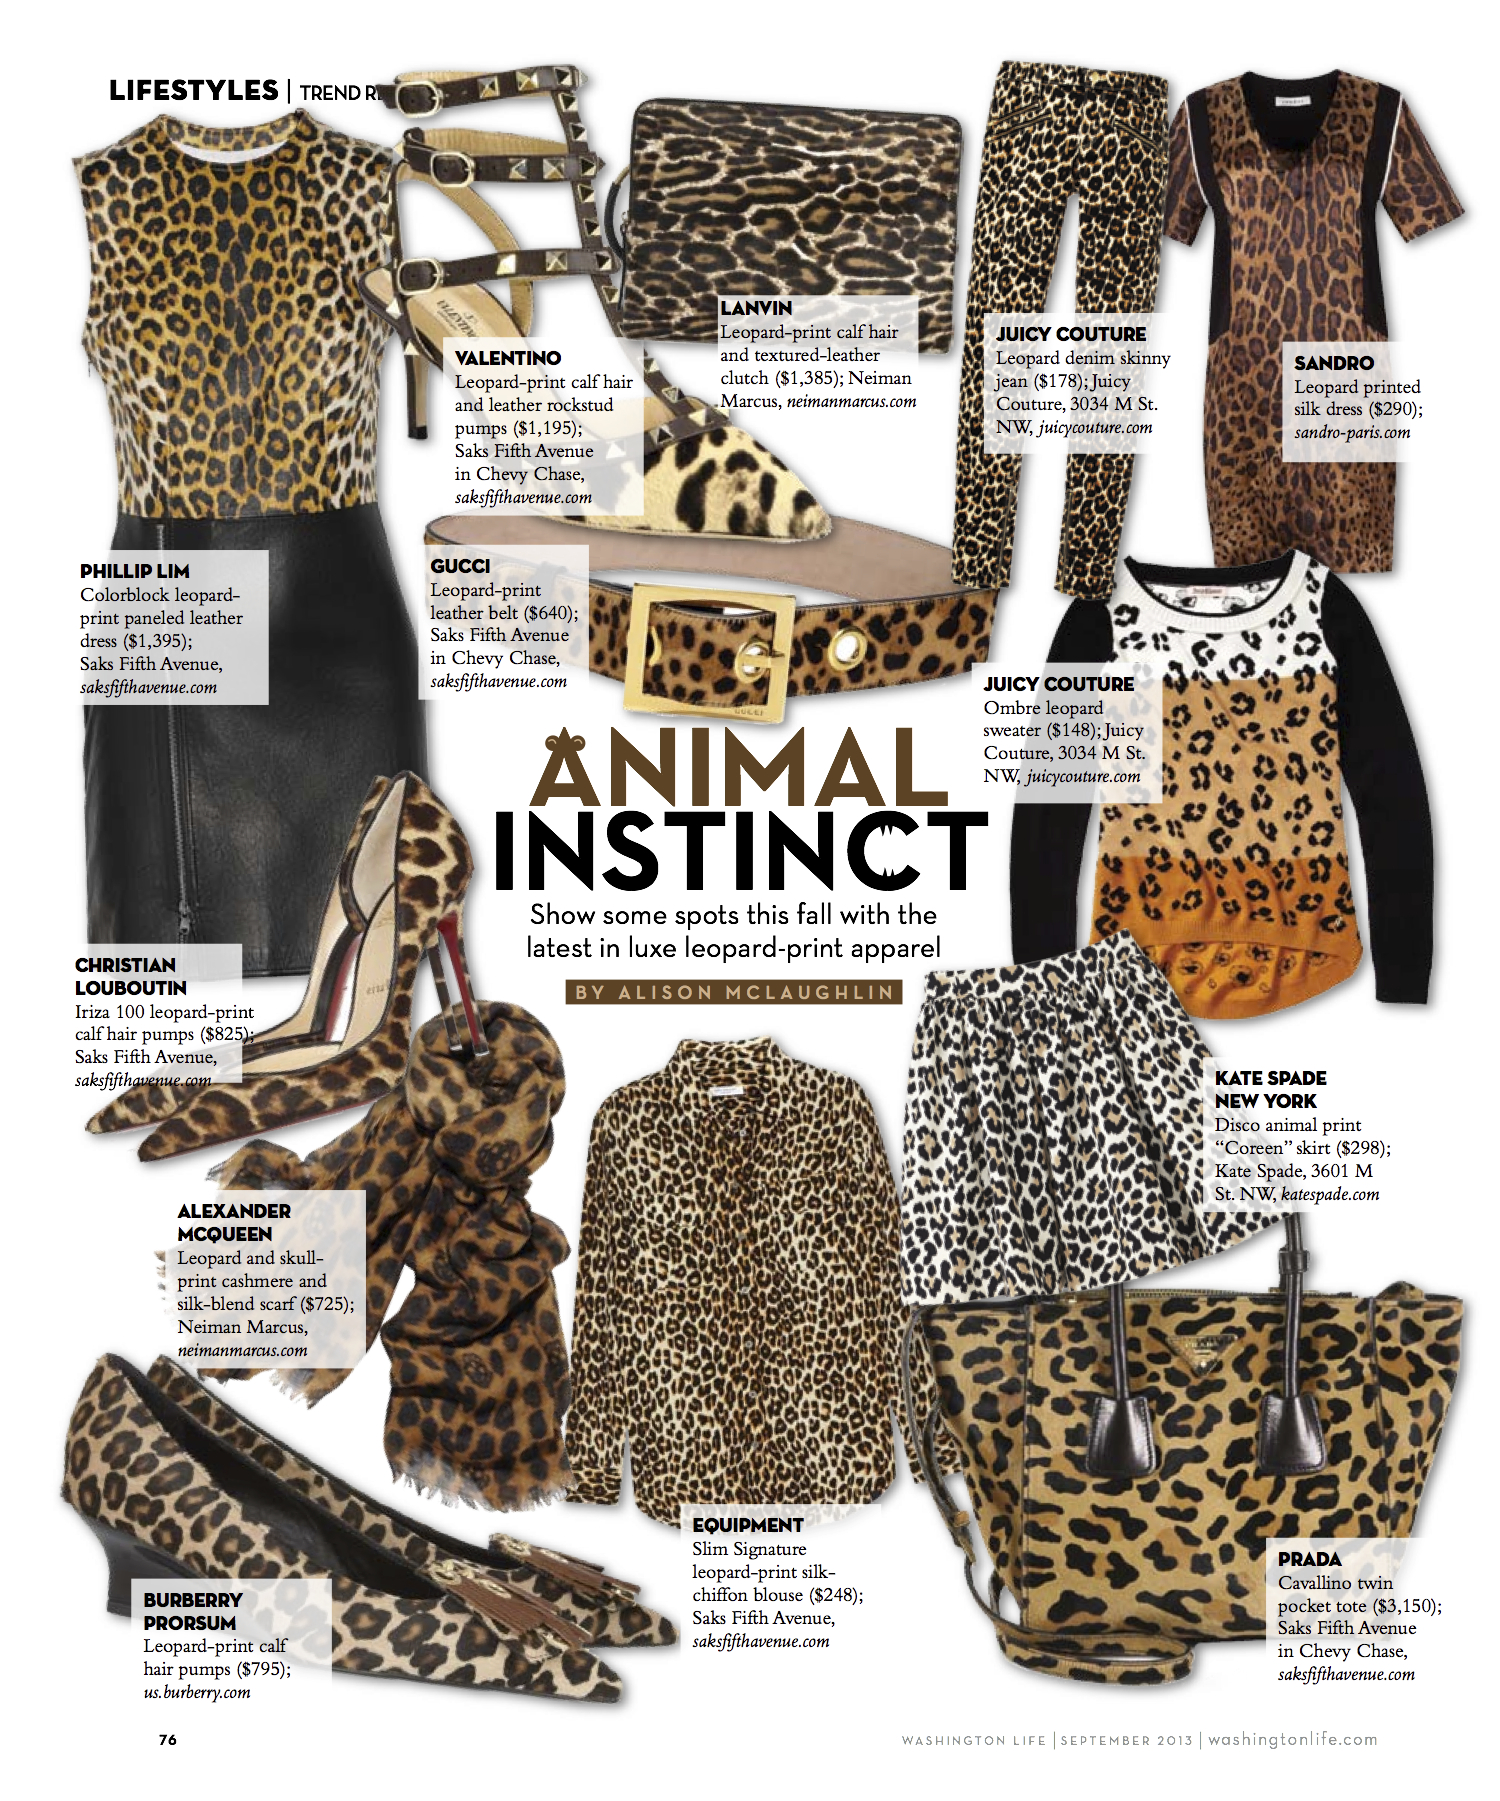 Discussion on this topic: Trend Report: Leopard Print, trend-report-leopard-print/